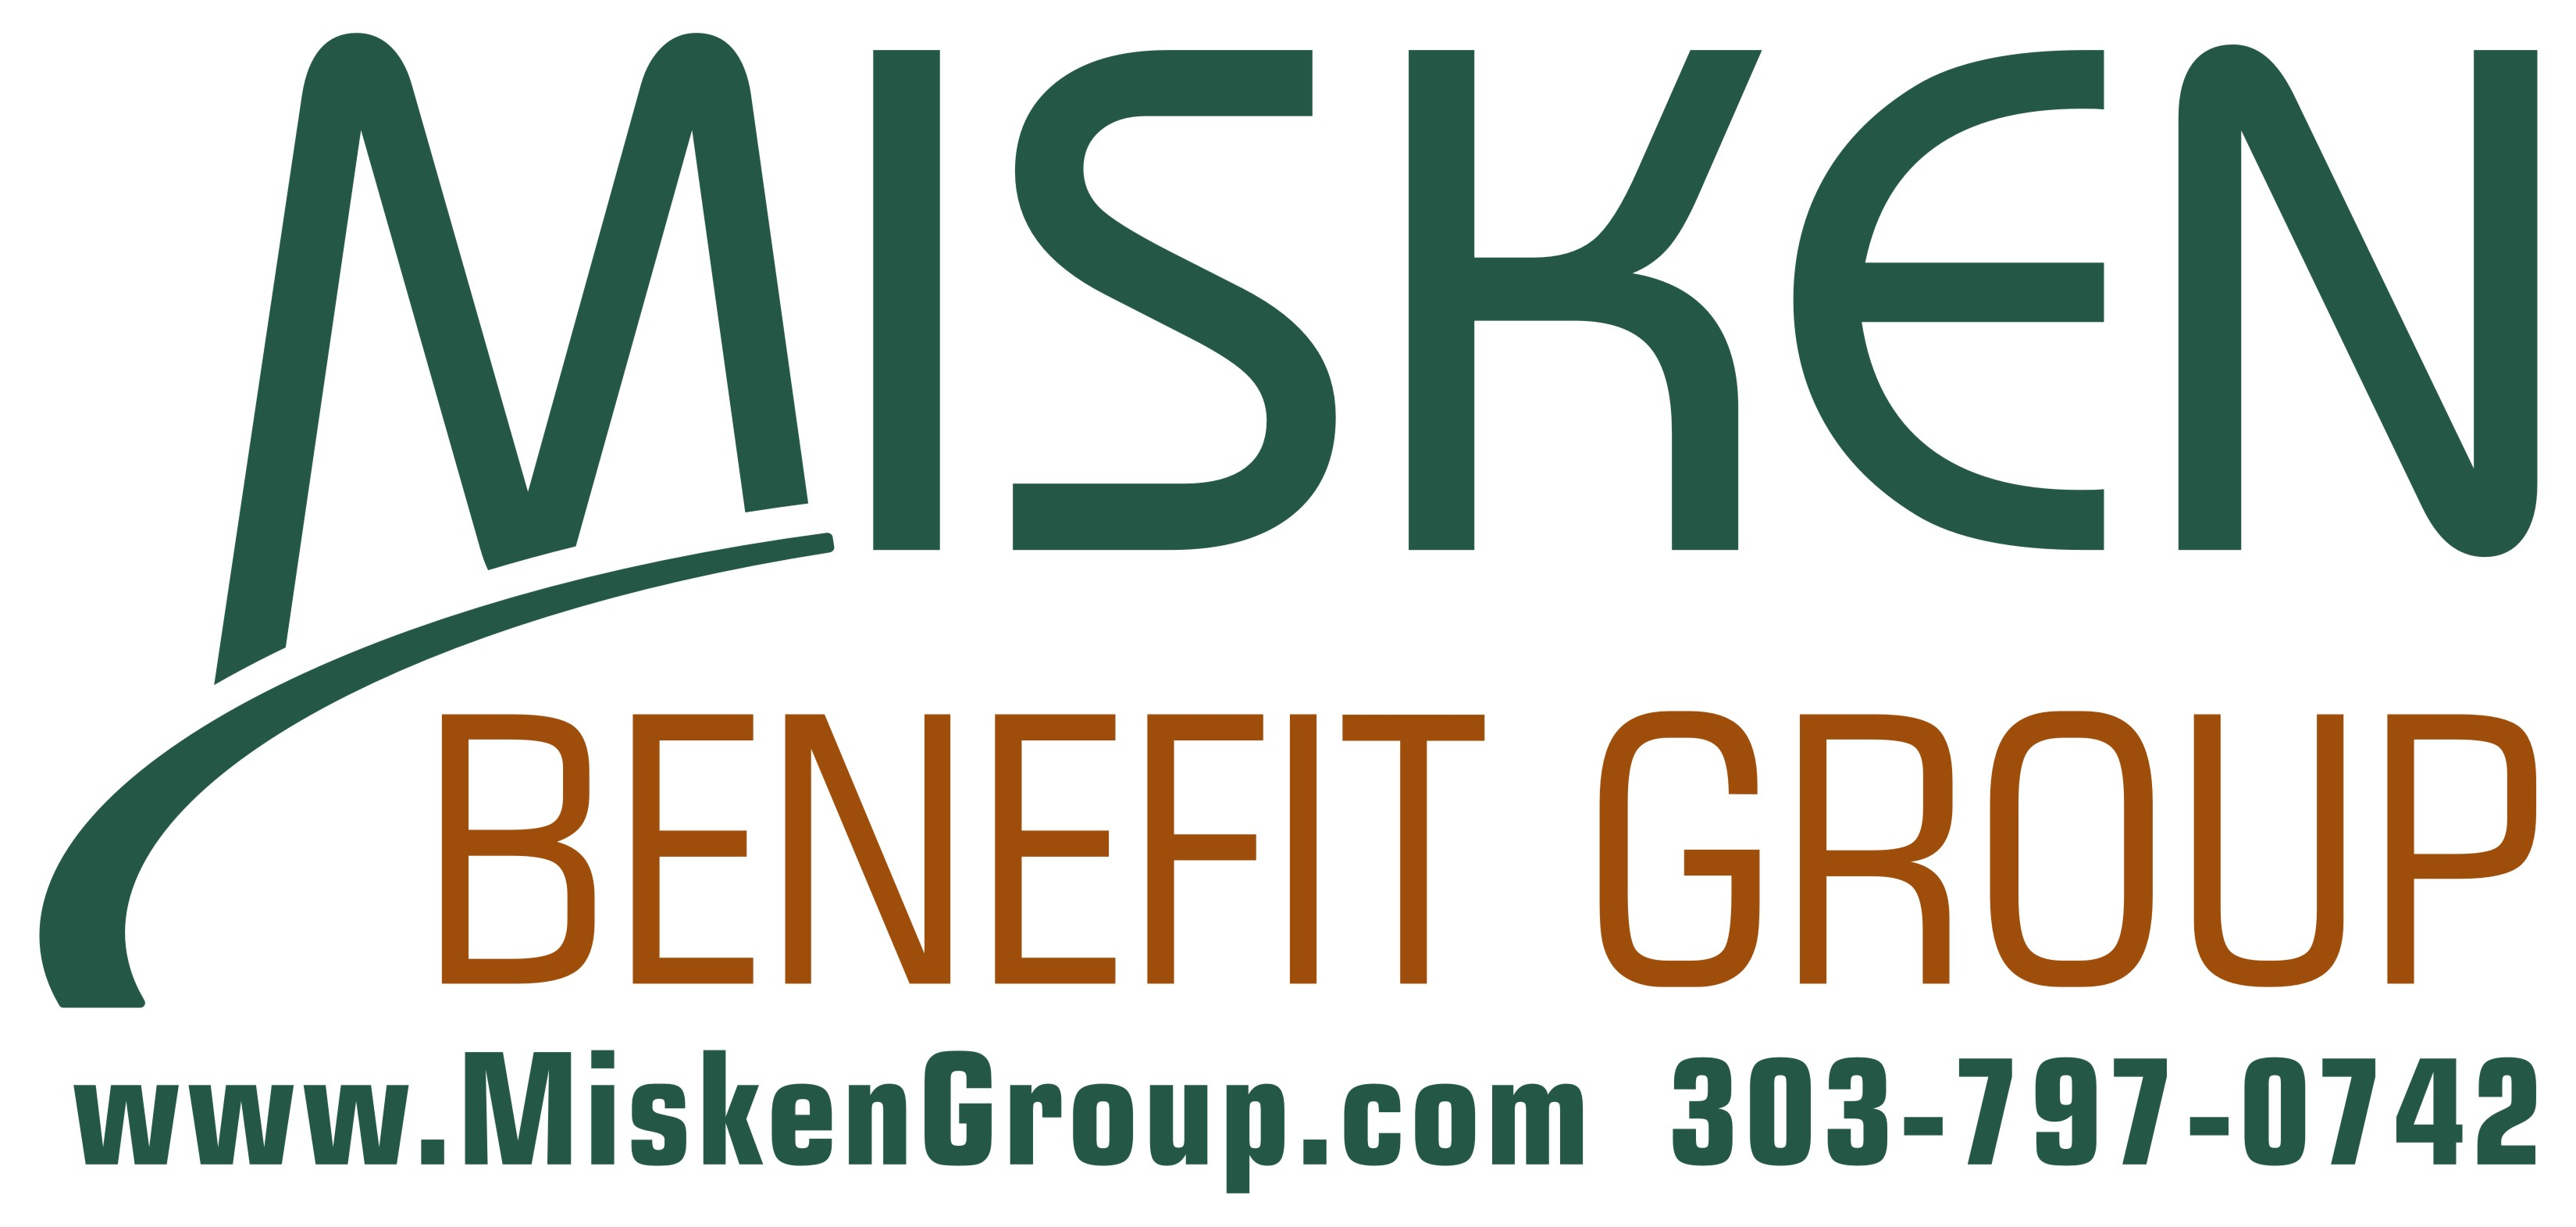 Anthem Blue Cross and Blue Shield : Independent Authorized Agent Misken, Rex